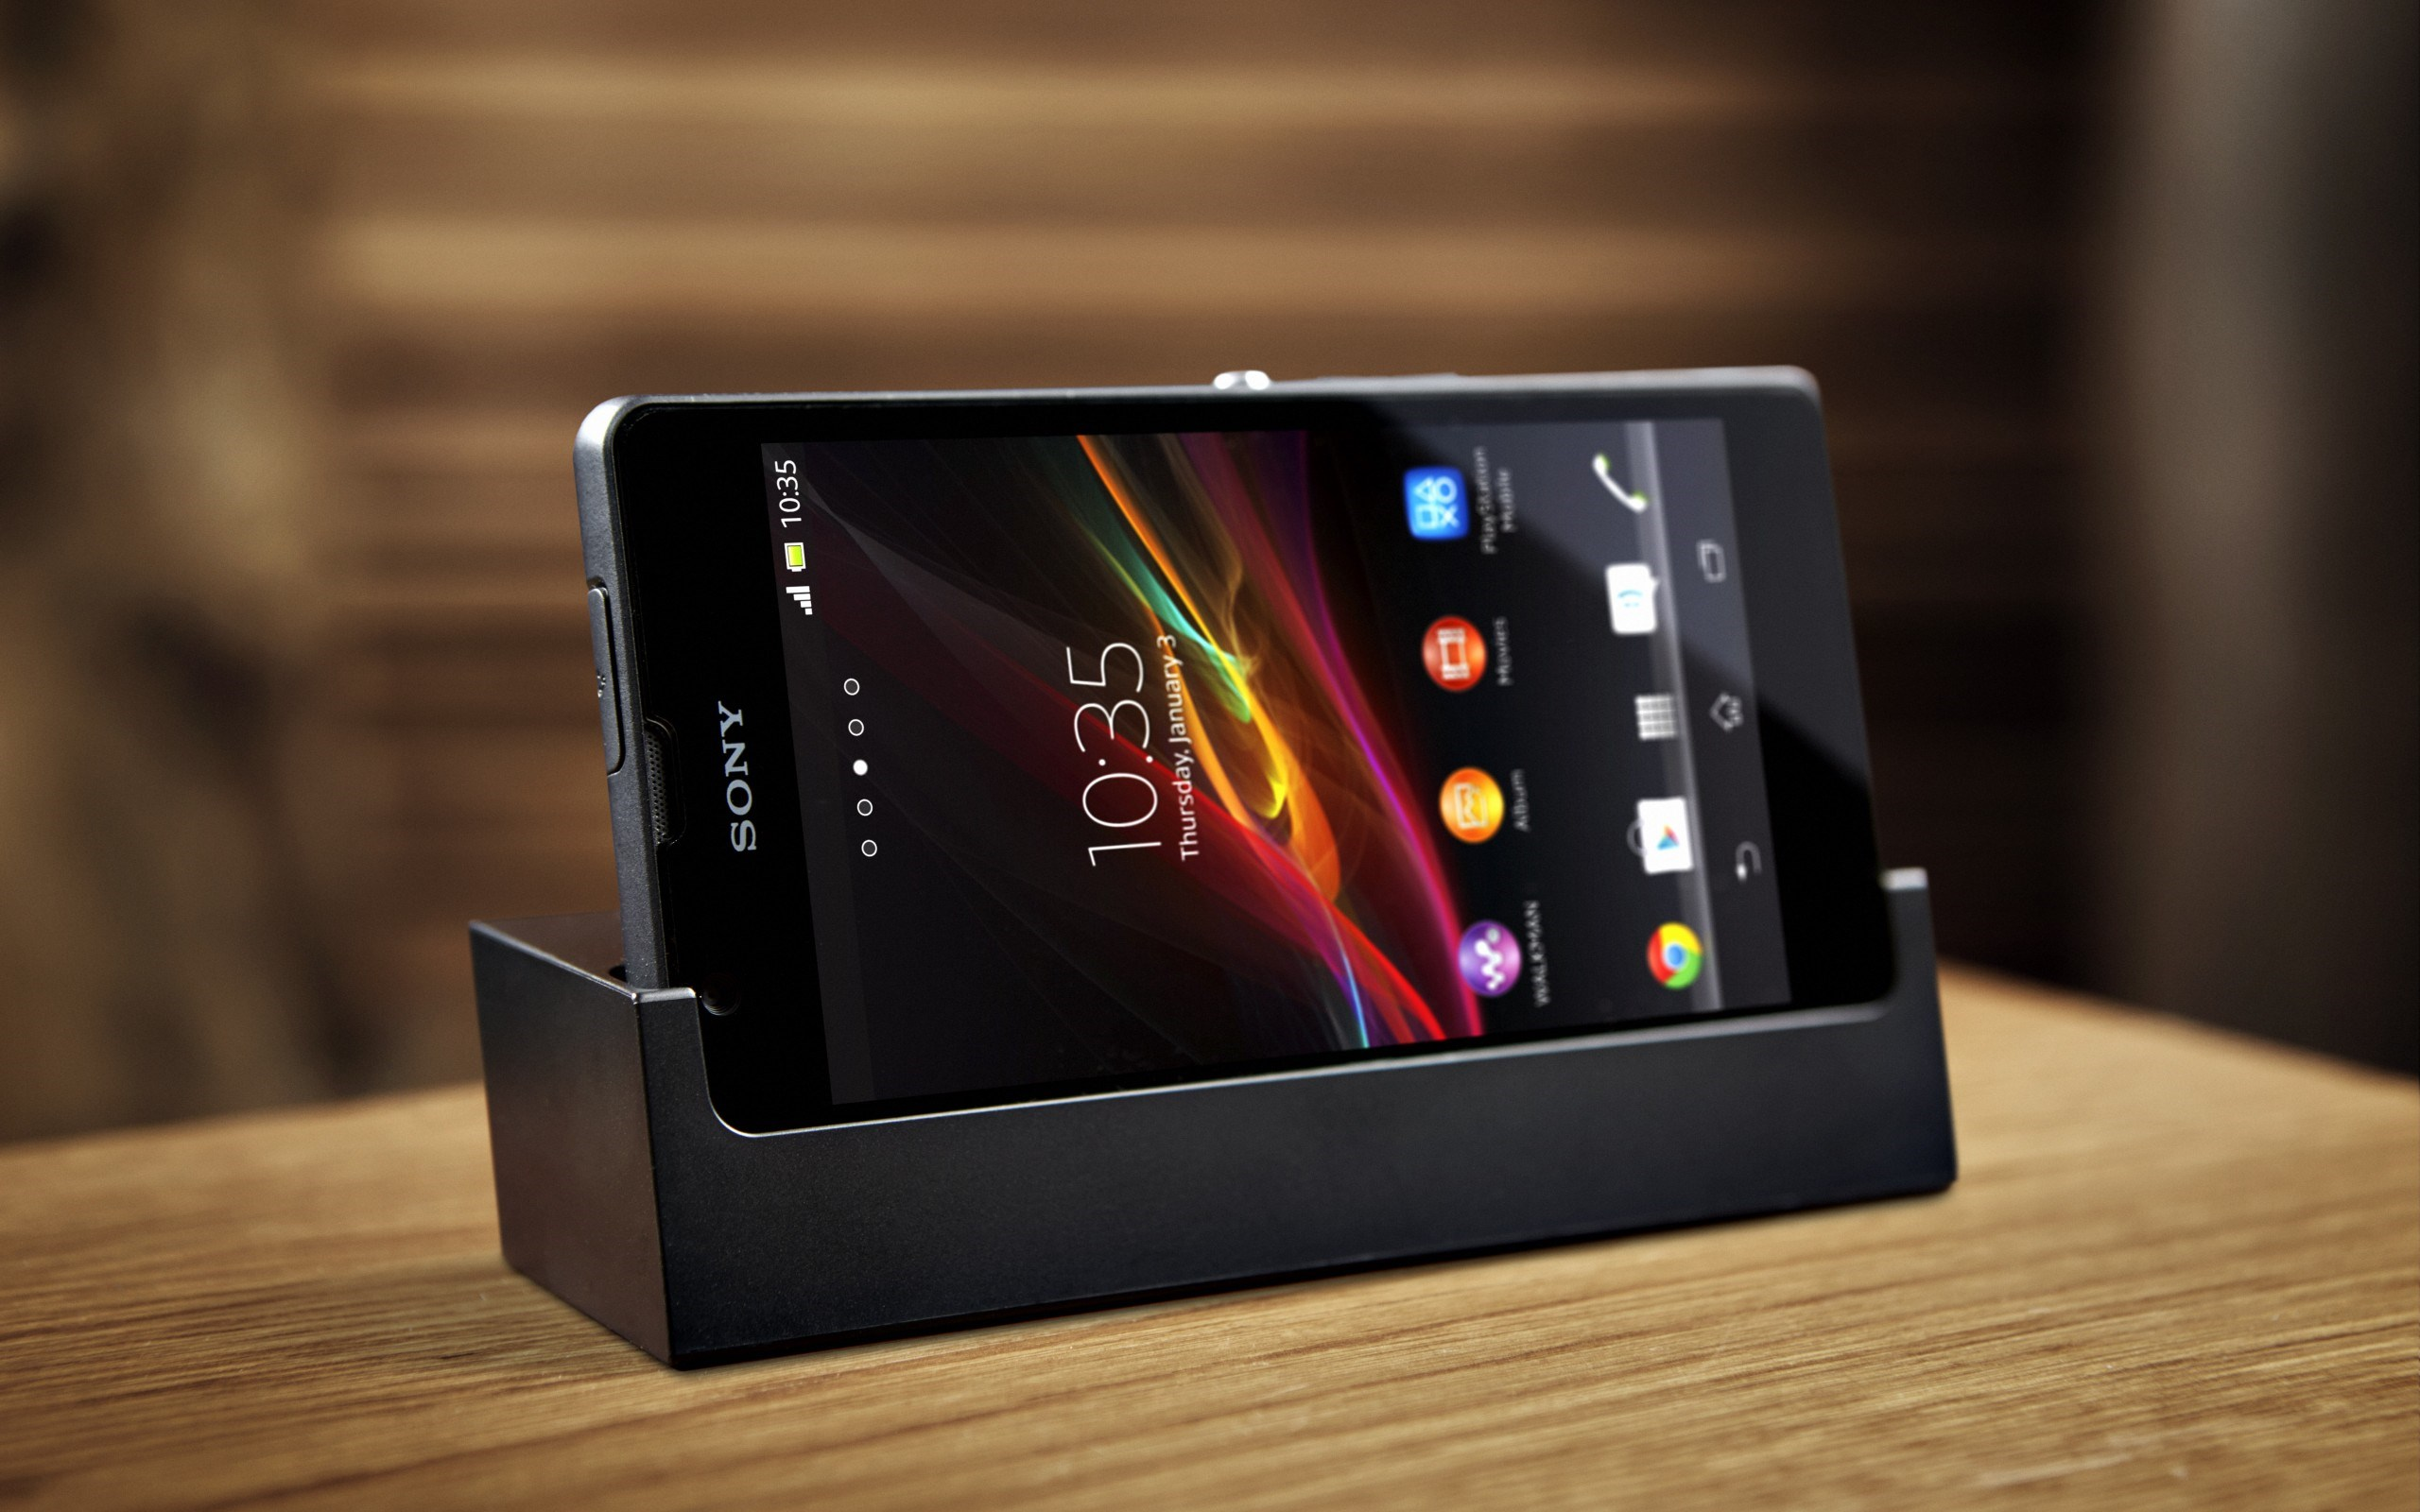 Sony Xperia ZR Station Hi-Tech